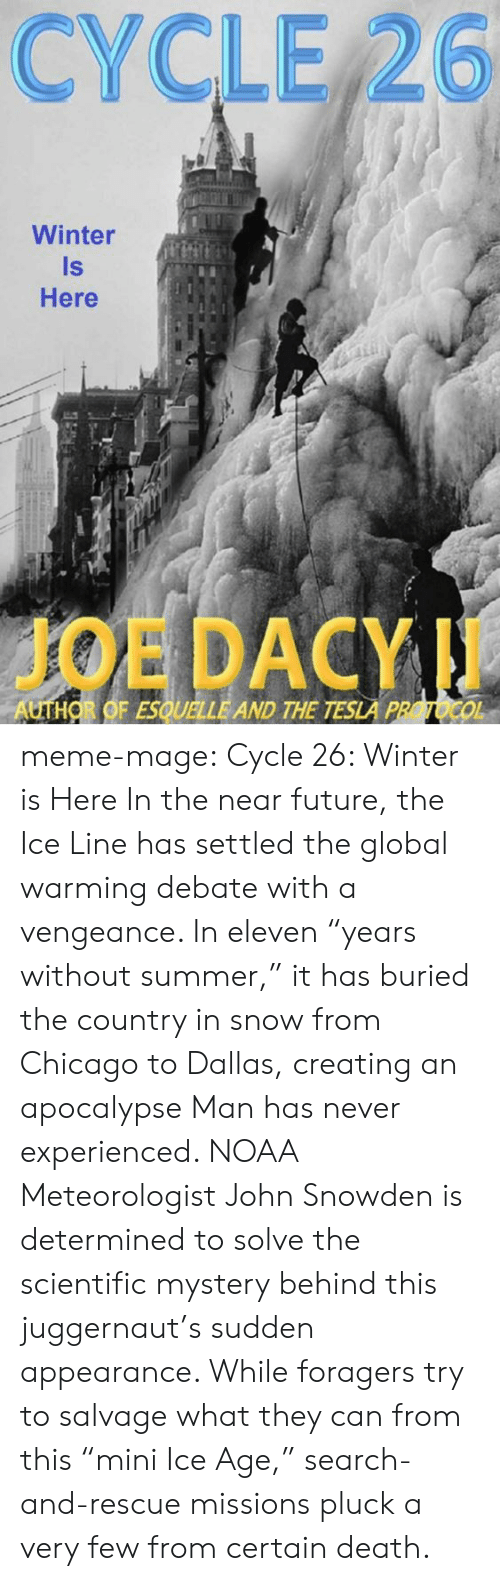 "meme: CYCLE 26  Winter  Is  Here  JOE DACYI  AUTHOR OF ESQUELLE AND THE TESLA PROTOCO meme-mage:    Cycle 26: Winter is Here     In the near future, the Ice Line has settled the global warming debate with a vengeance. In eleven ""years without summer,"" it has buried the country in snow from Chicago to Dallas, creating an apocalypse Man has never experienced. NOAA Meteorologist John Snowden is determined to solve the scientific mystery behind this juggernaut's sudden appearance. While foragers try to salvage what they can from this ""mini Ice Age,"" search-and-rescue missions pluck a very few from certain death."